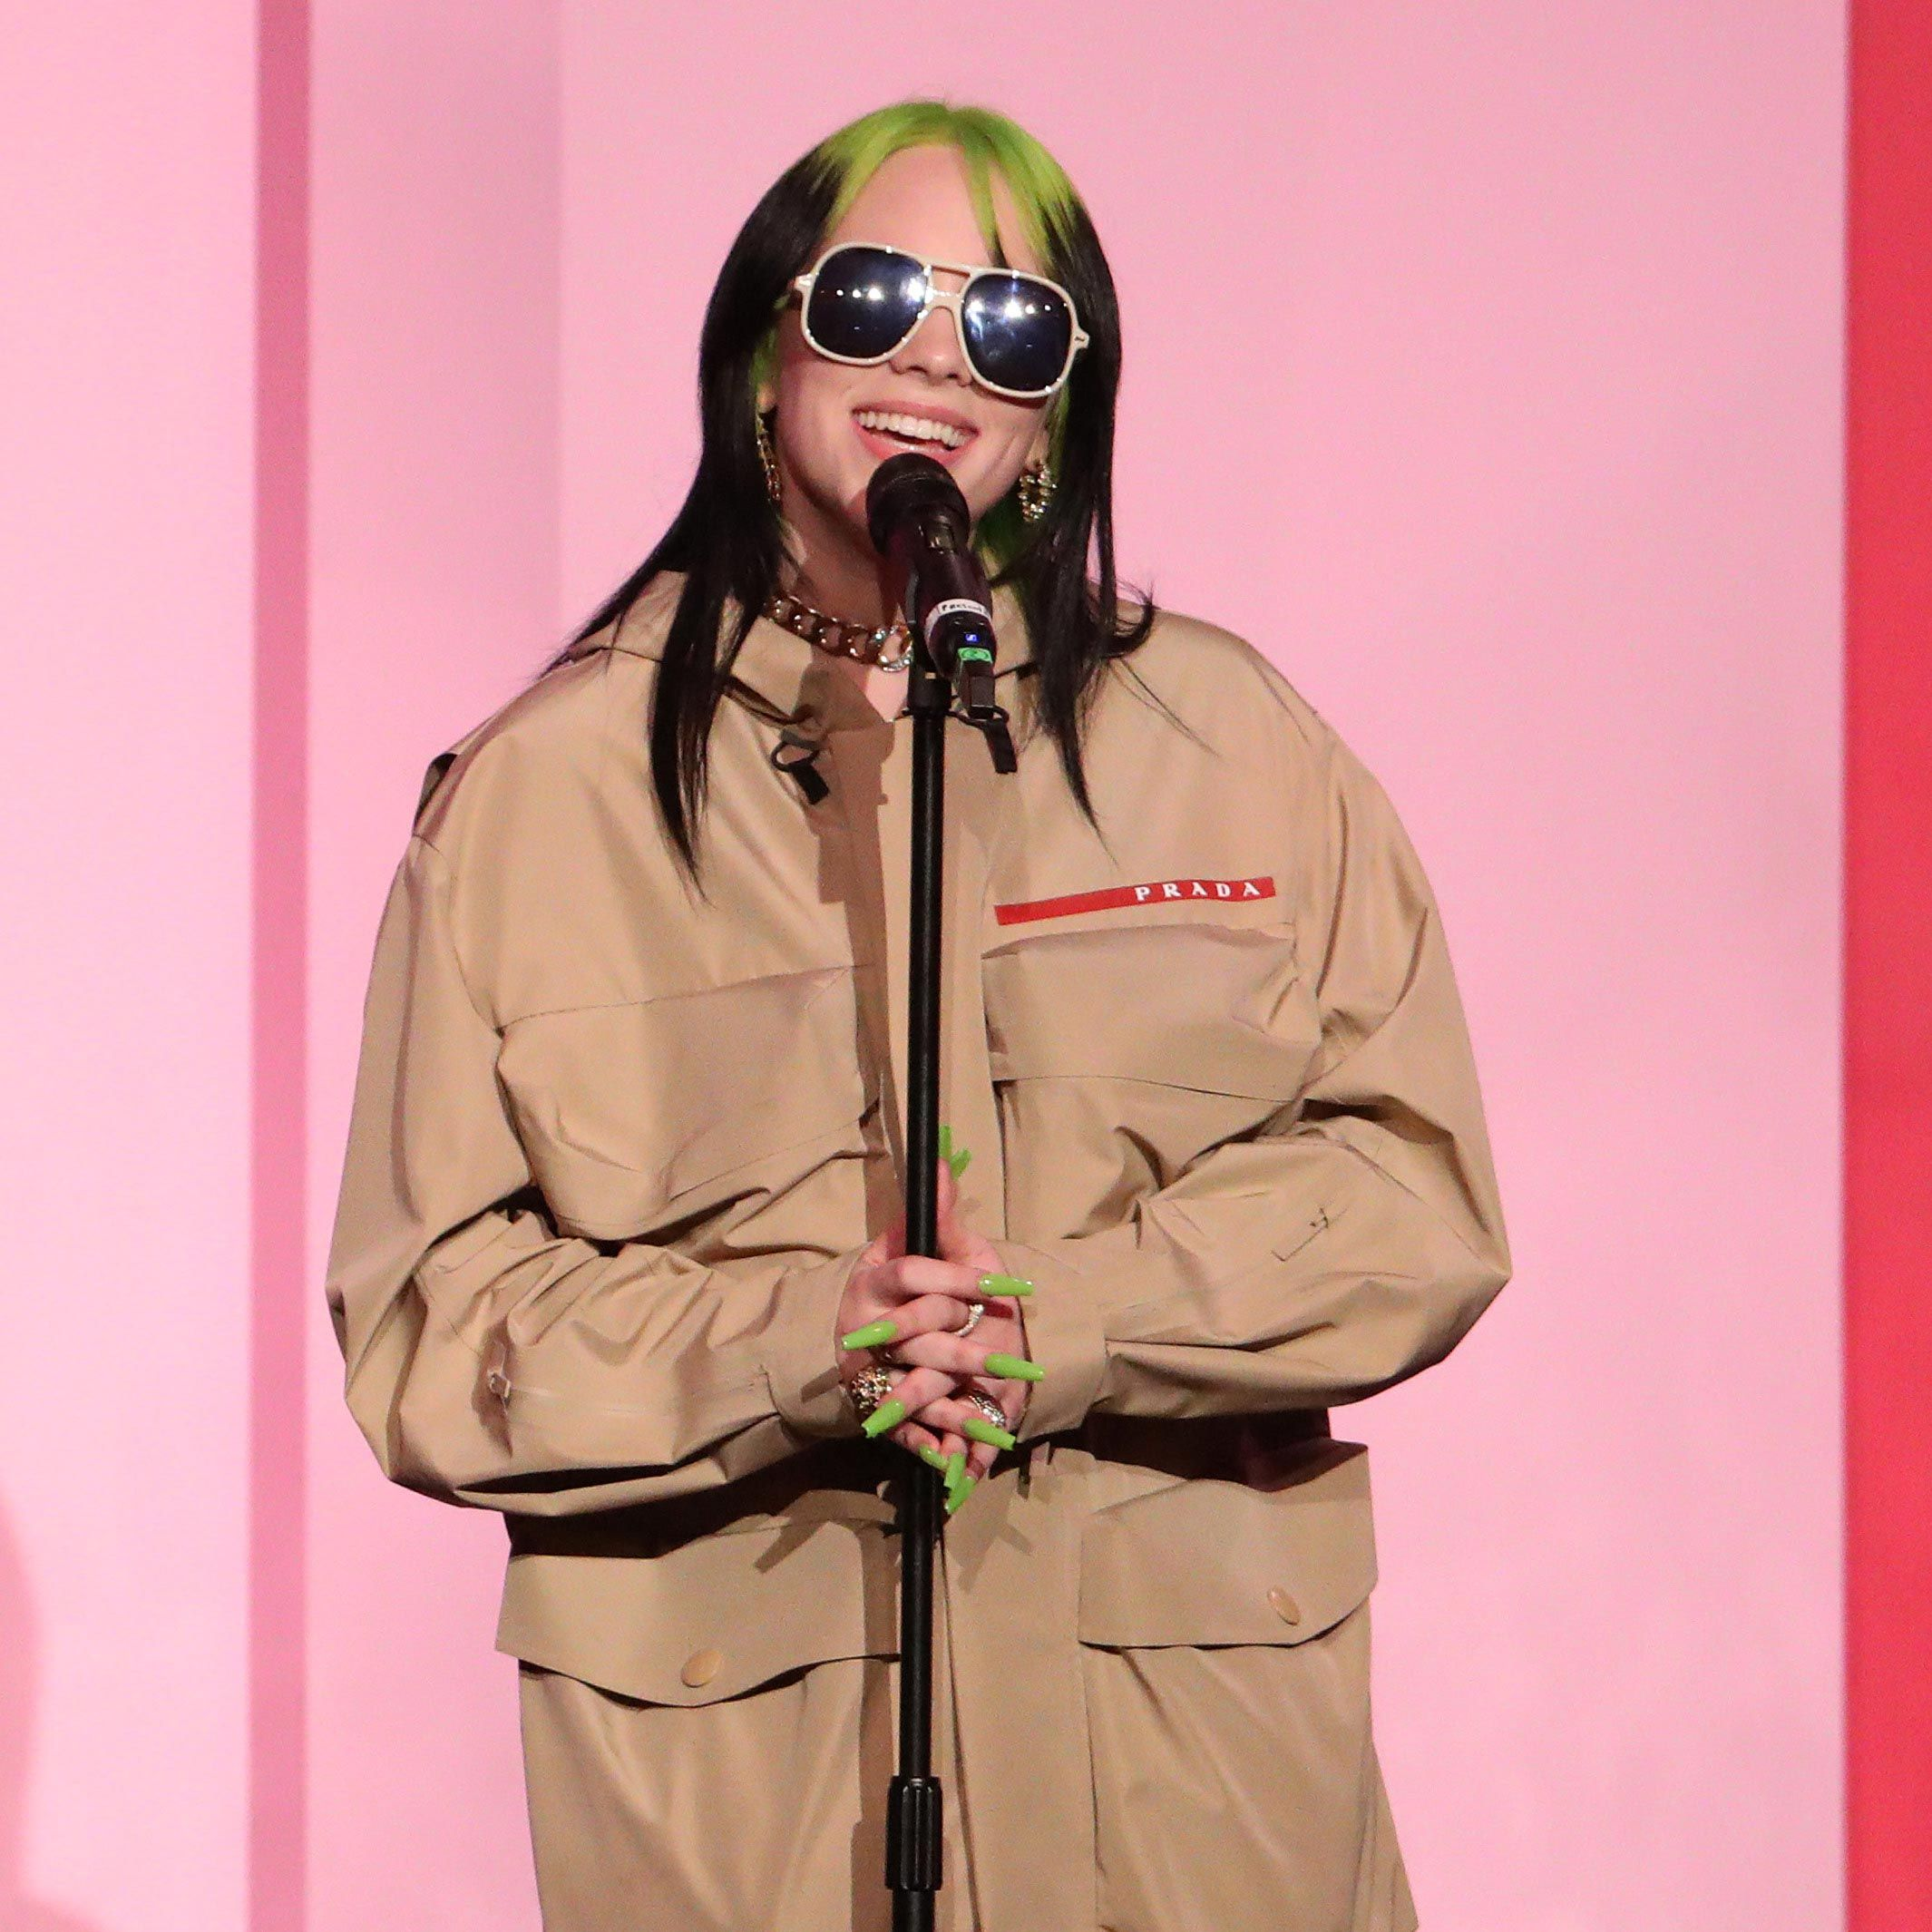 No Time to Die's theme song will be performed by Billie Eilish